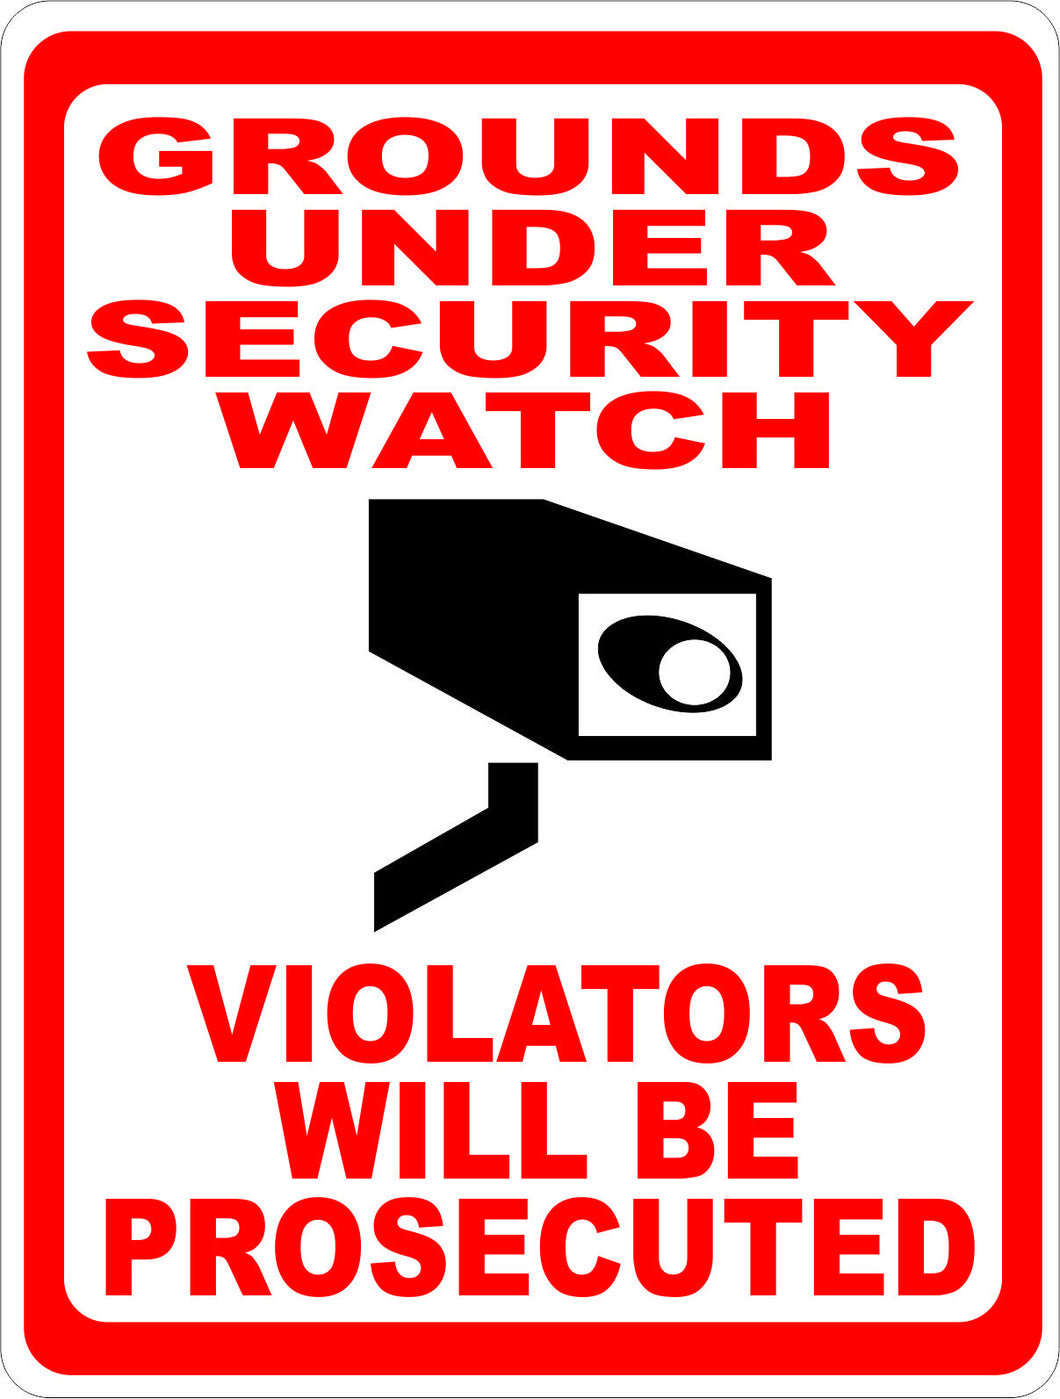 Grounds Under Security Watch Violators Prosecuted Sign - Signs & Decals by SalaGraphics